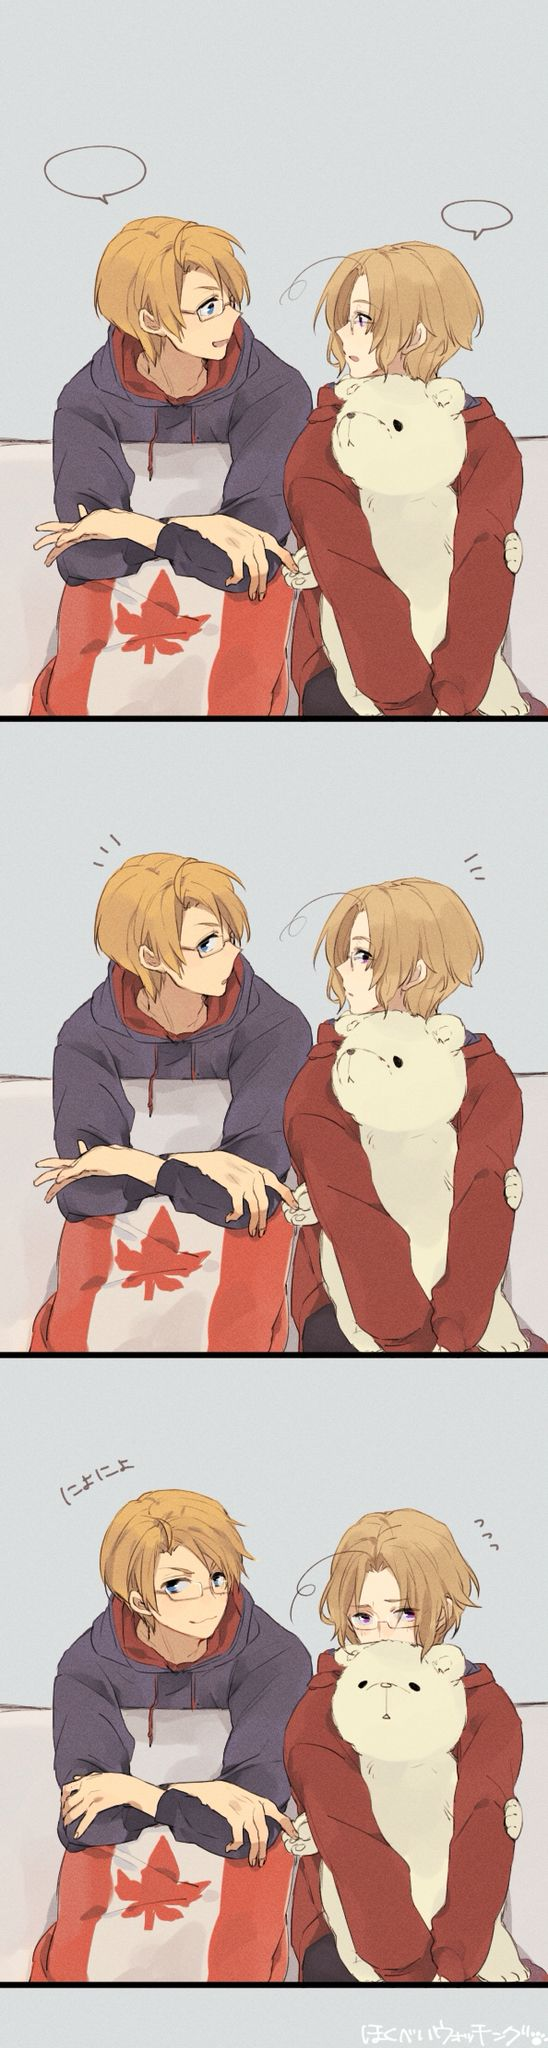 "Hetalia | All I can imagine is the viewer poking their head into the room where they're talking, and Al is like, ""Oh hey _____!"" while Mattie just sits quietly because he's shy."